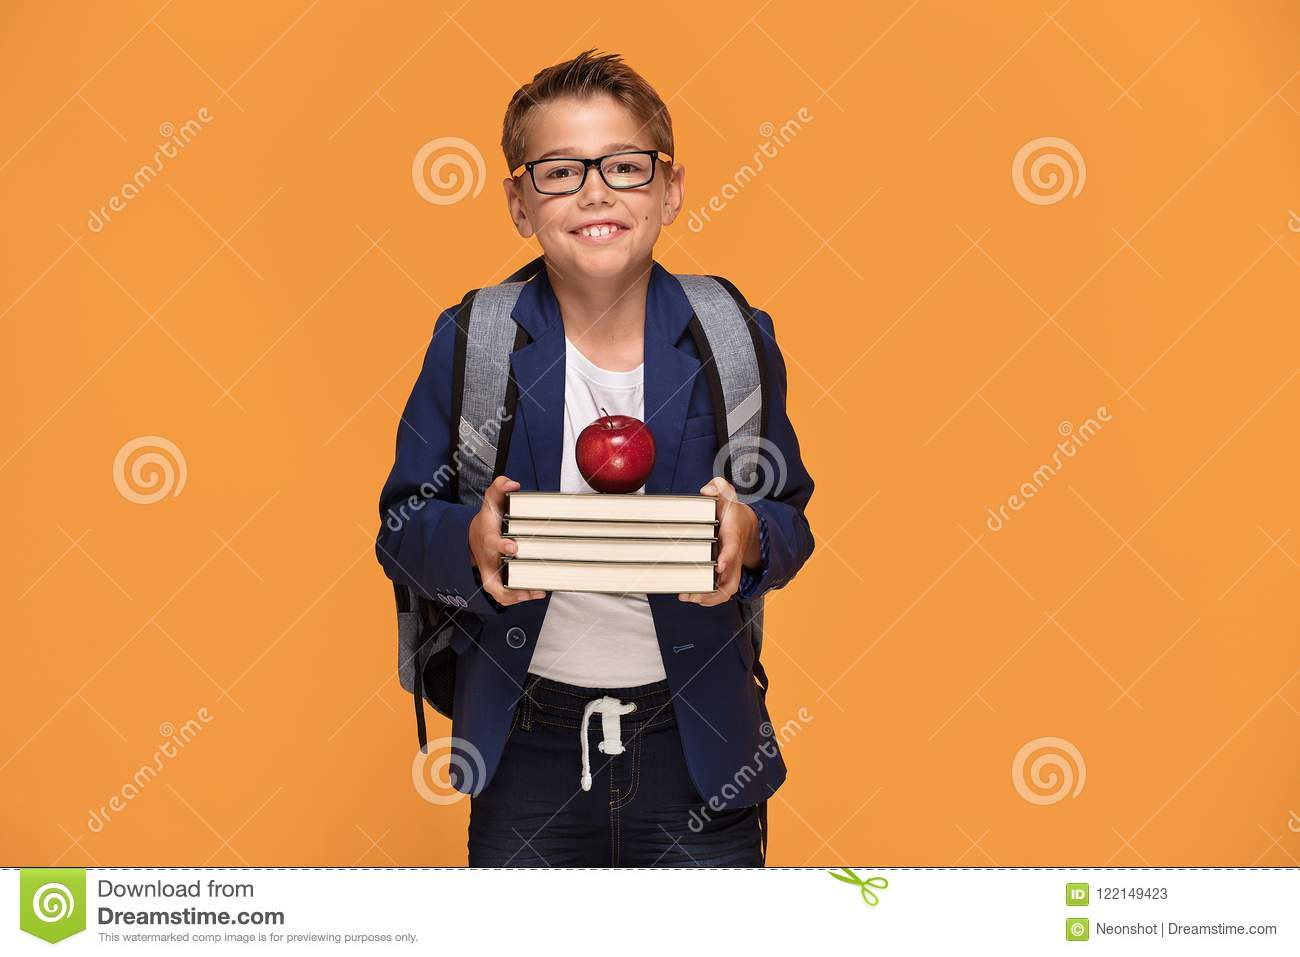 d4c5f5fda4 Little School Boy With Backpack And Books. Stock Image - Image of ...